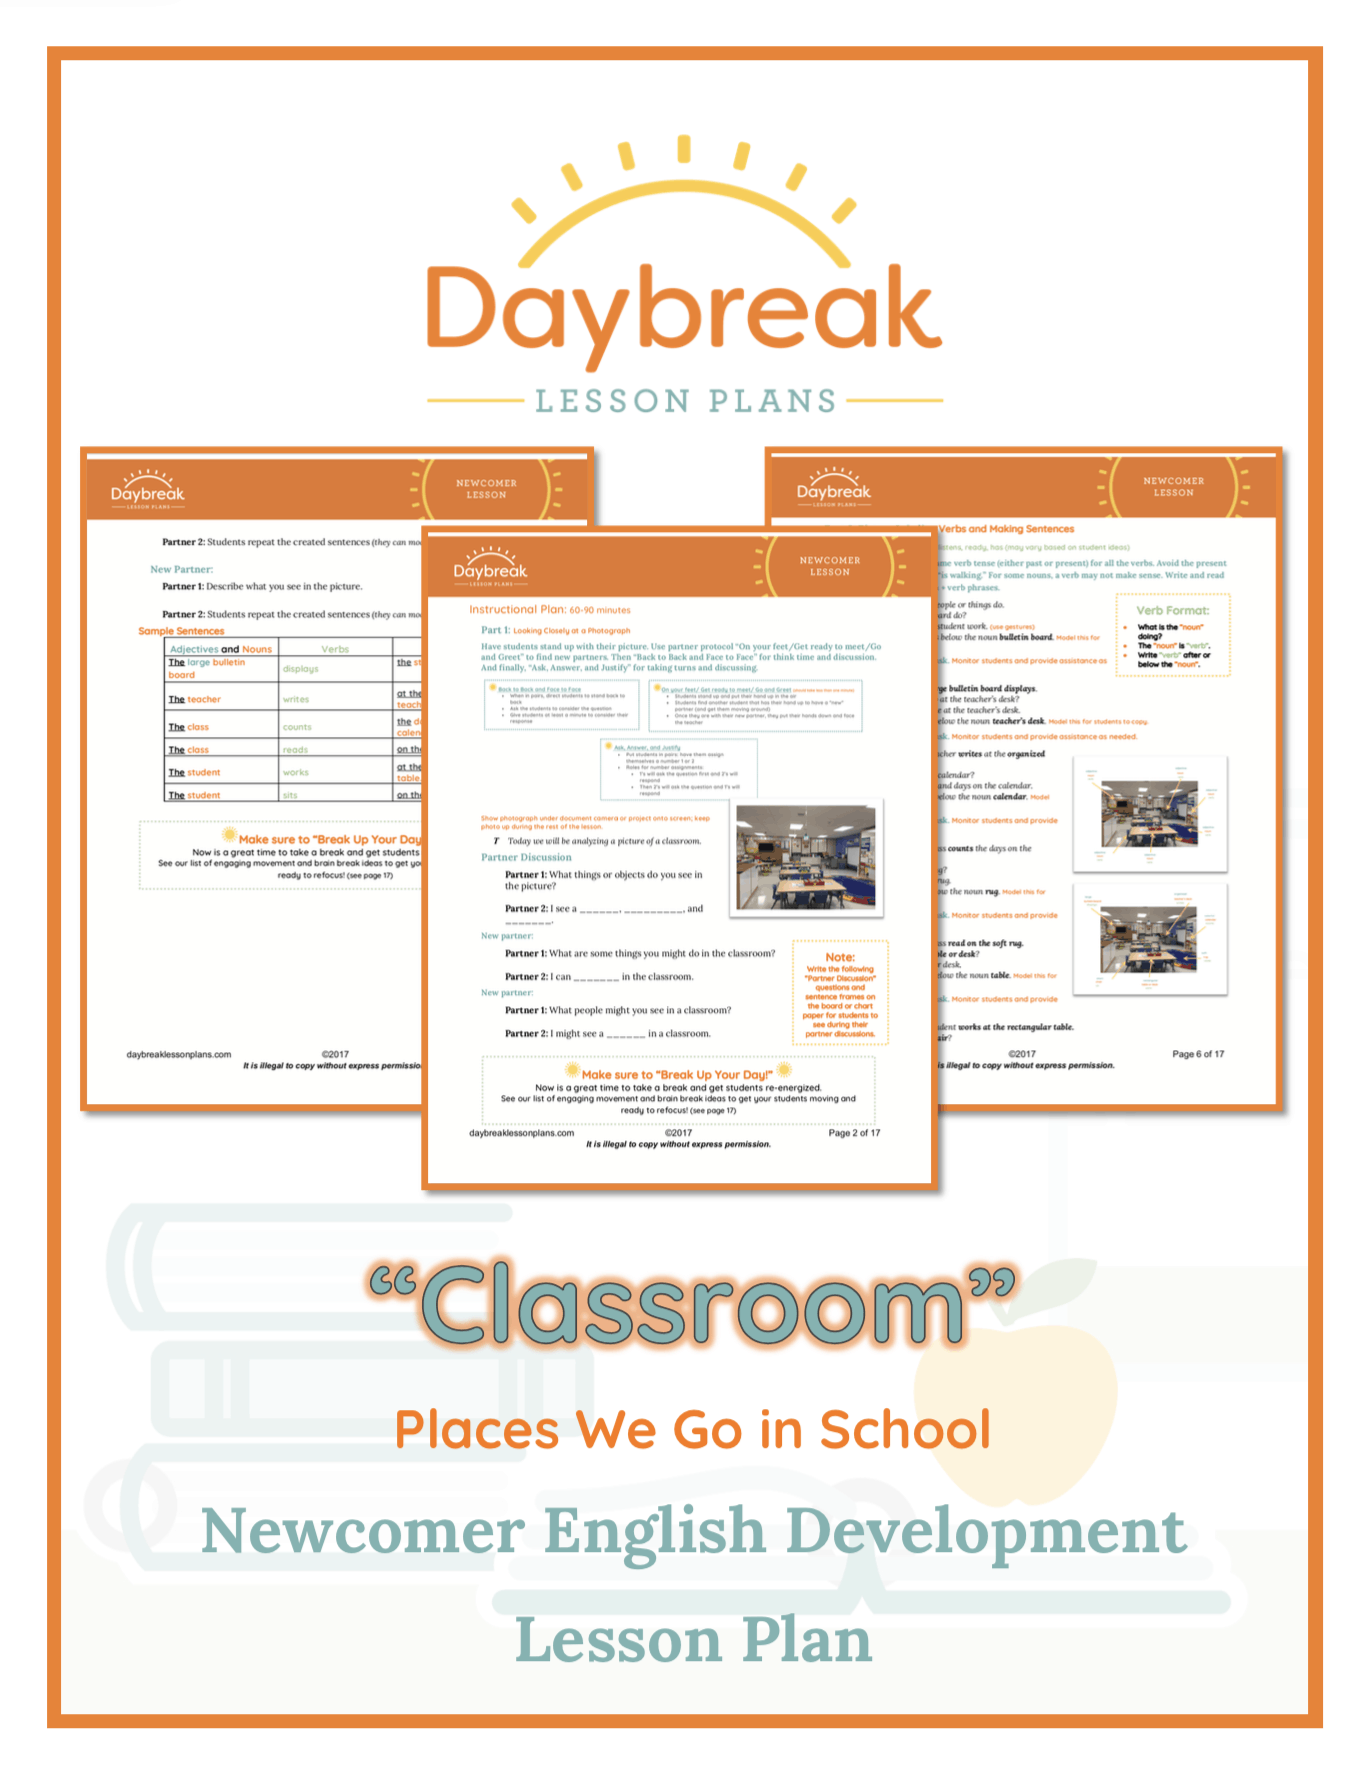 Classroom Design Page ~ Newcomer pwgis classroom coverpage daybreak lessons